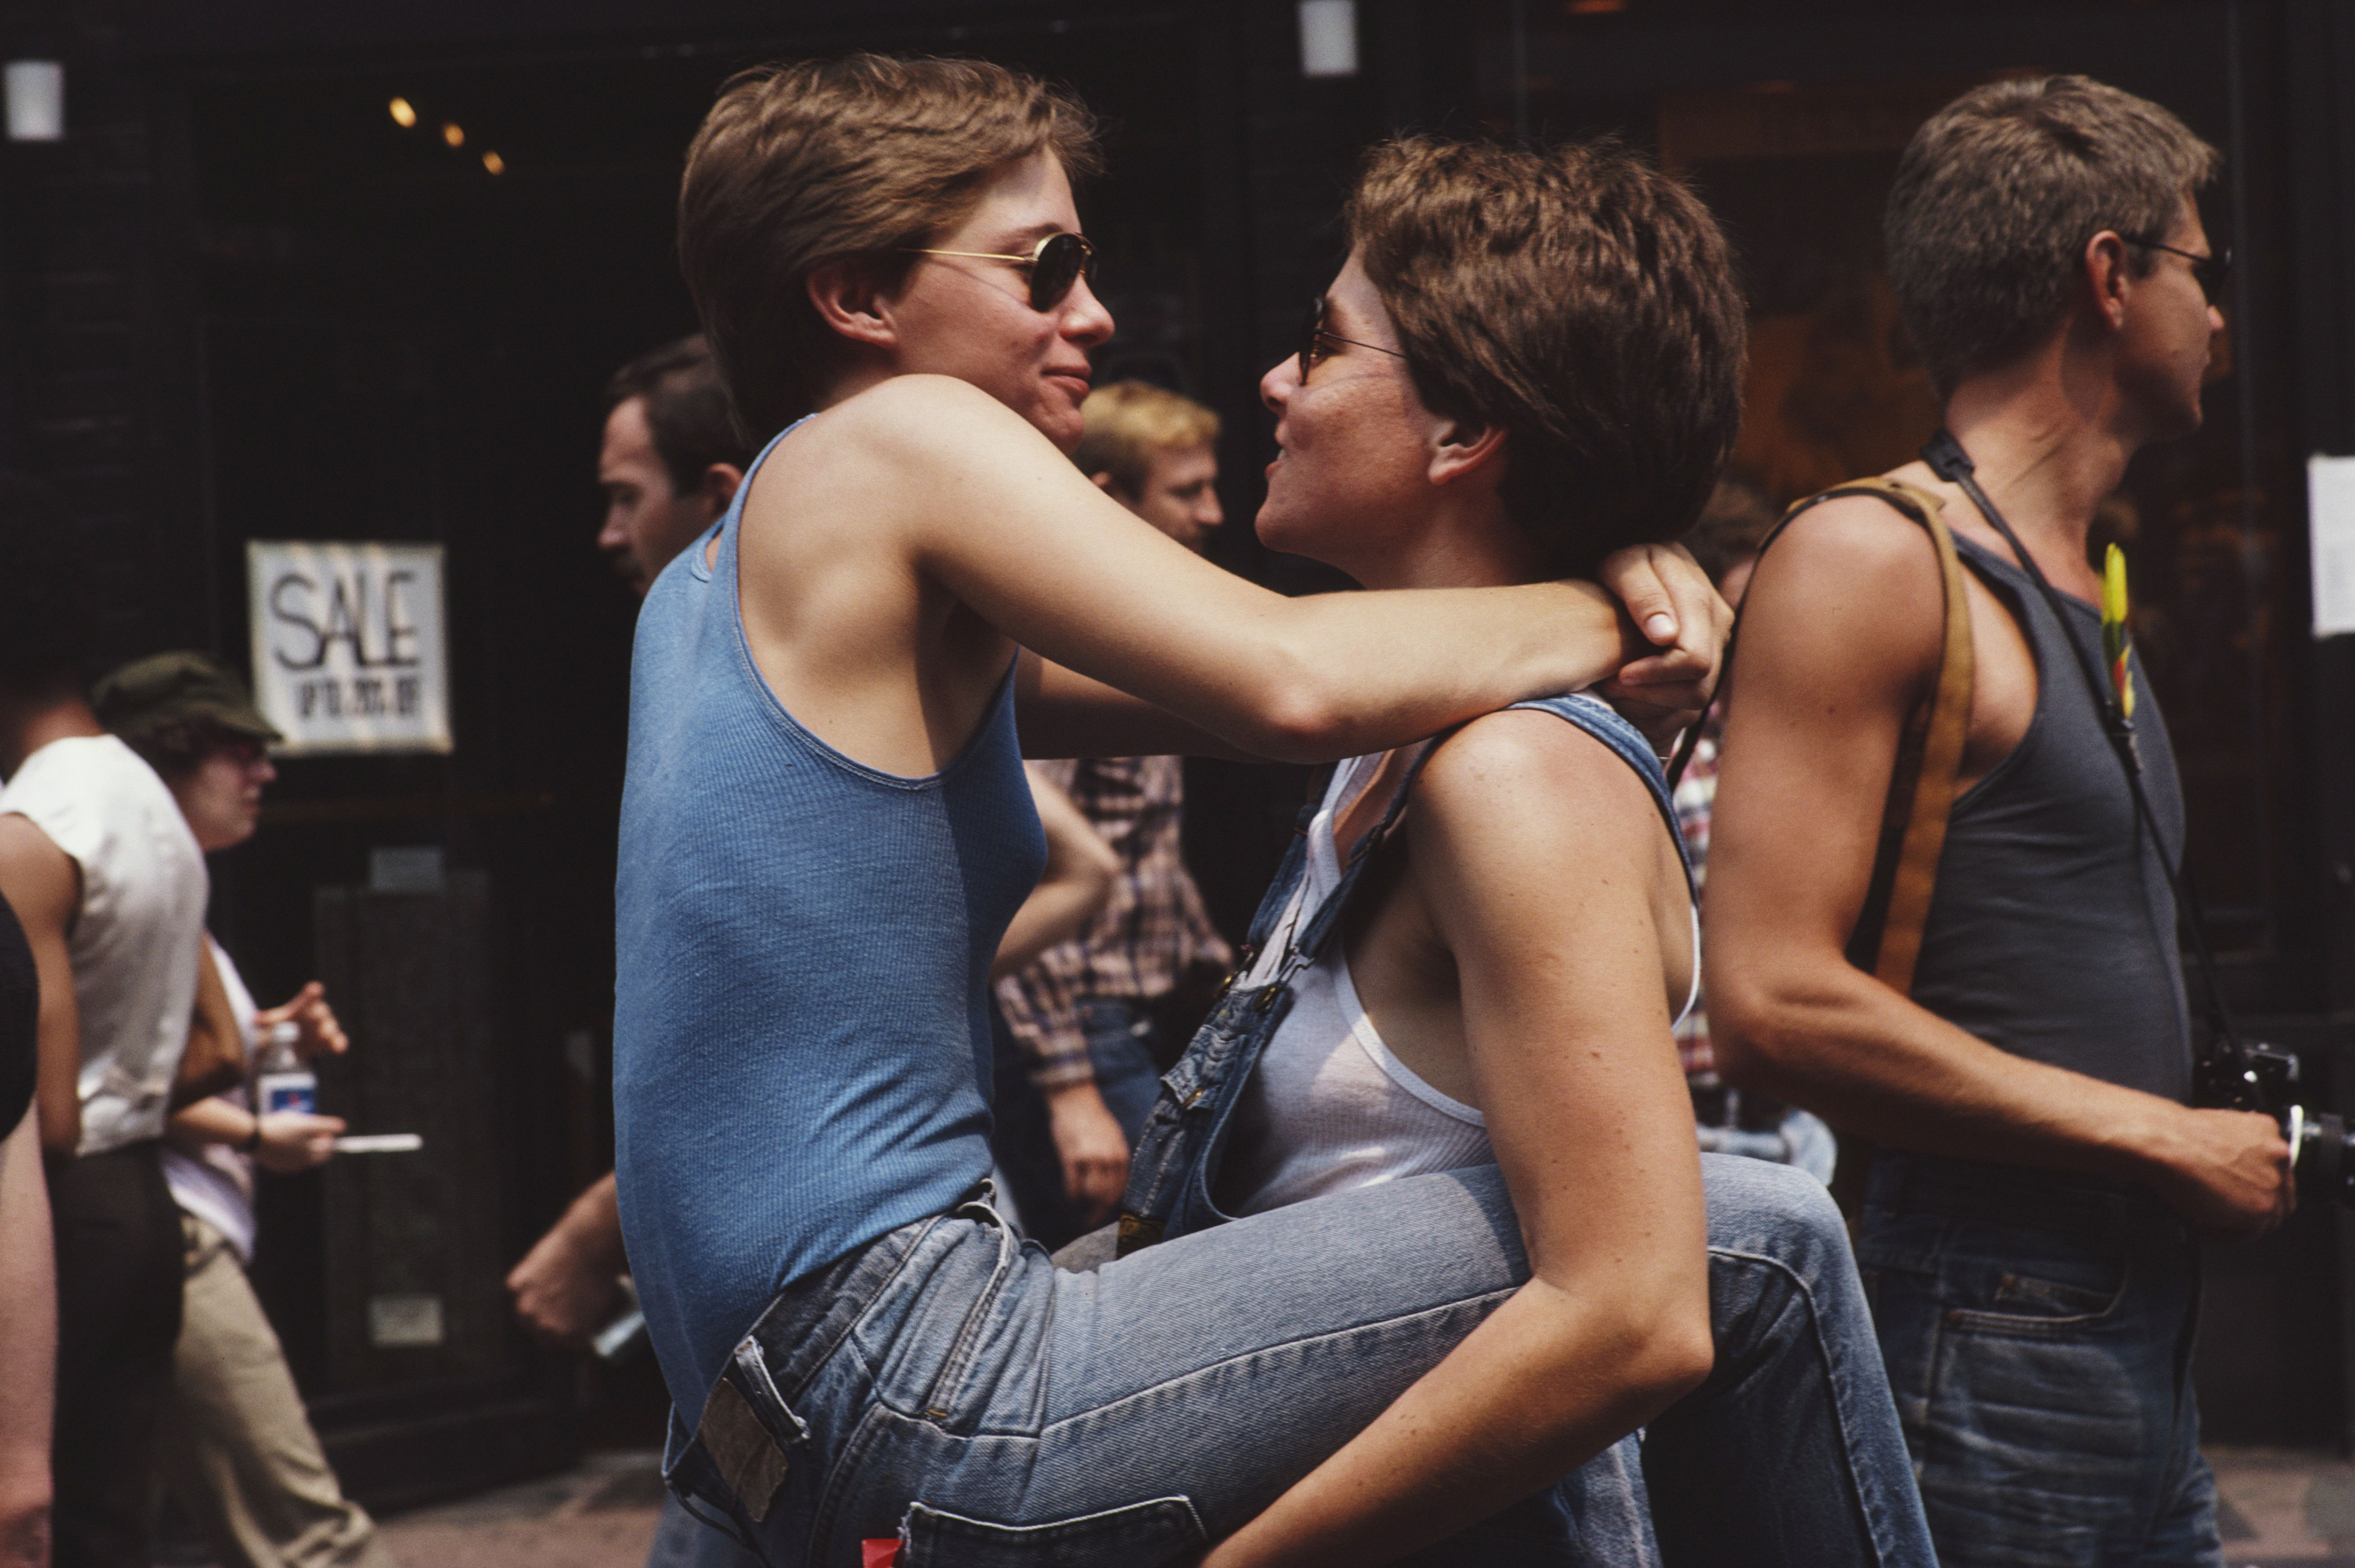 Two women embrace during the gay Pride parade in New York City,June 1982.